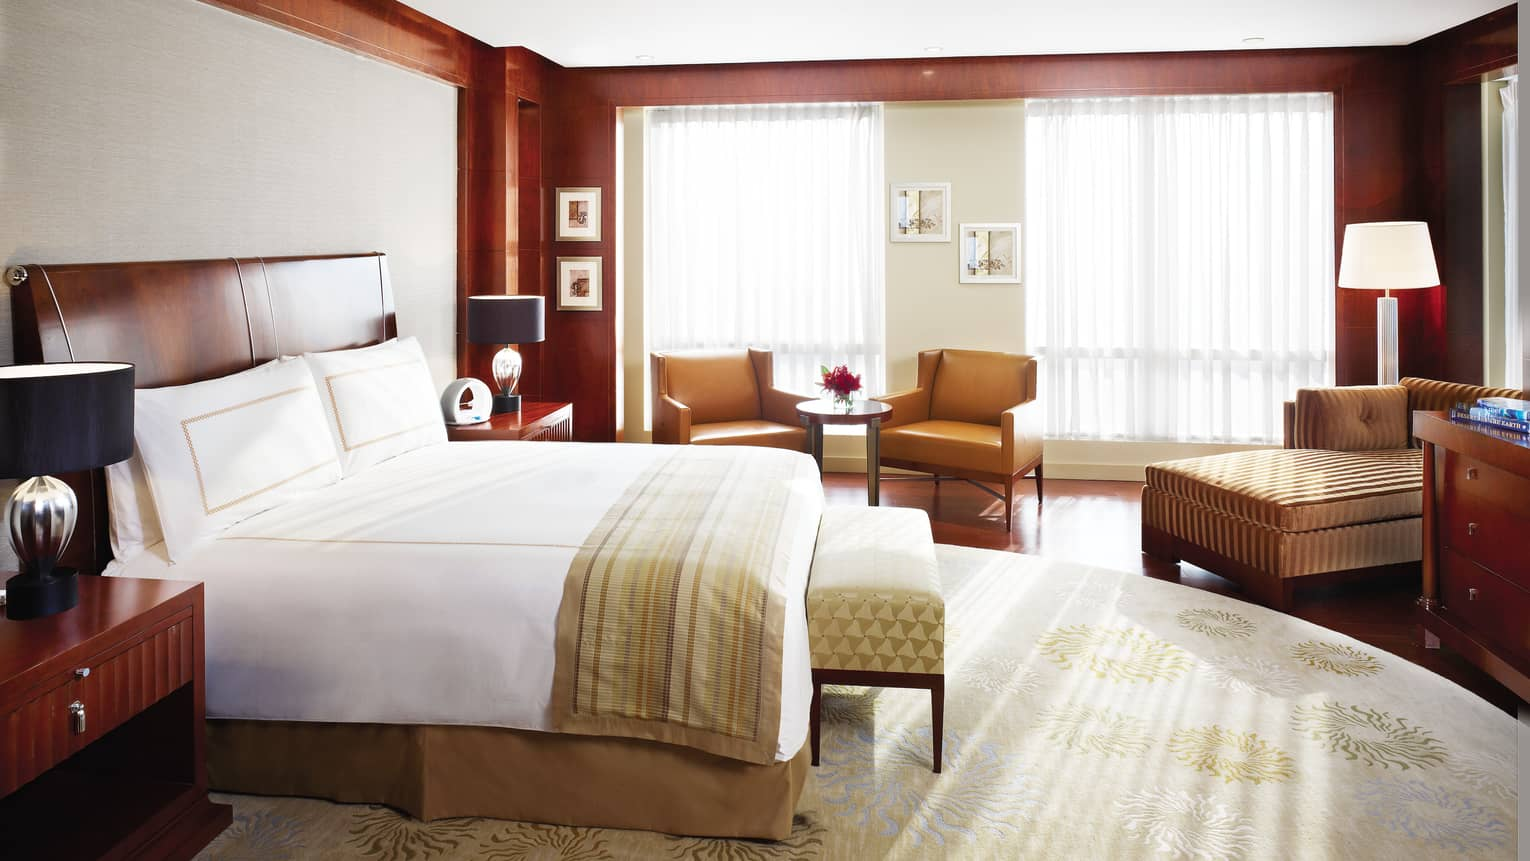 Presidential Suite bed, striped blanket, bench, brown leather armchairs and chaise by window